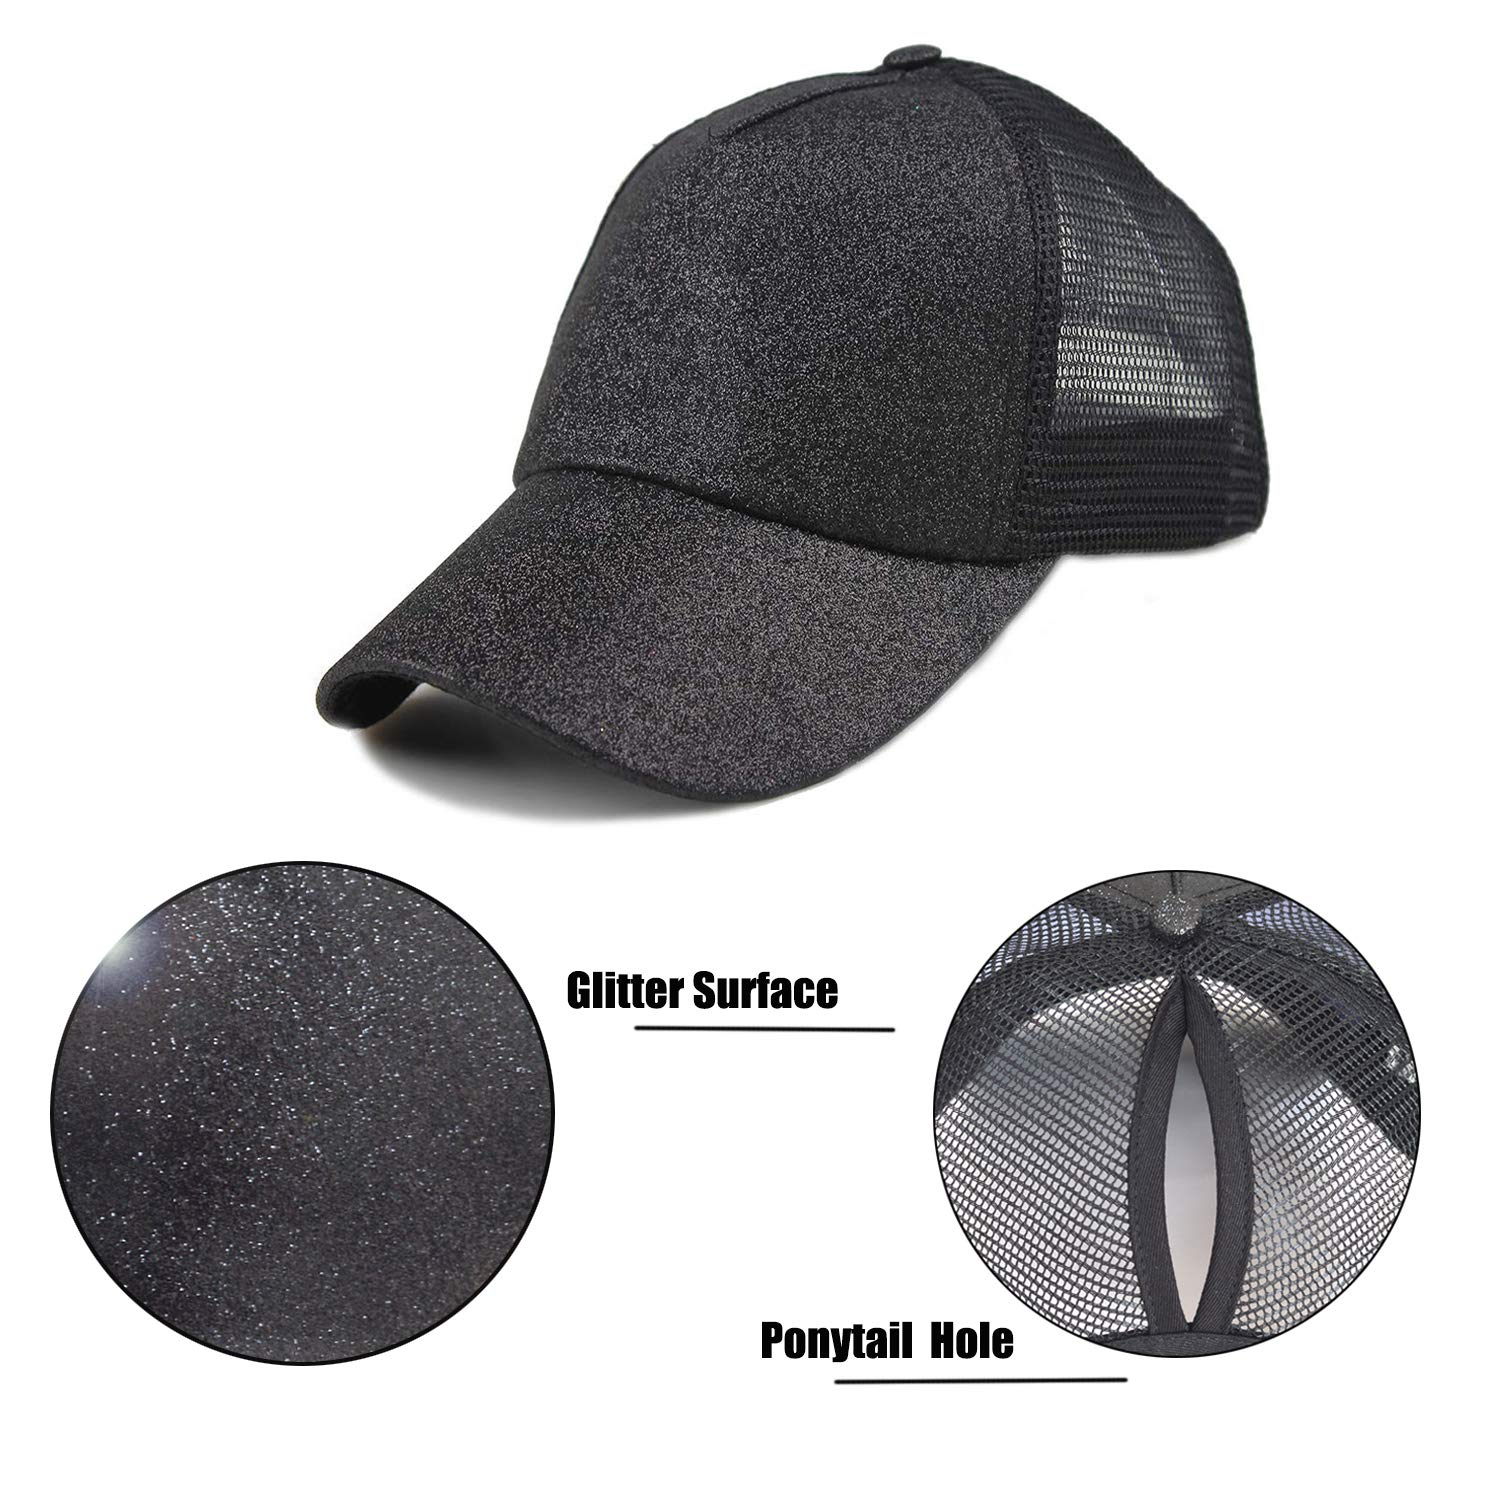 1ec7b48d FADA Black Glitter Ponytail Baseball Cap for High Ponytail Women Girl Messy  Bun Shinny Ponycaps Baseball Hat at Amazon Women's Clothing store: